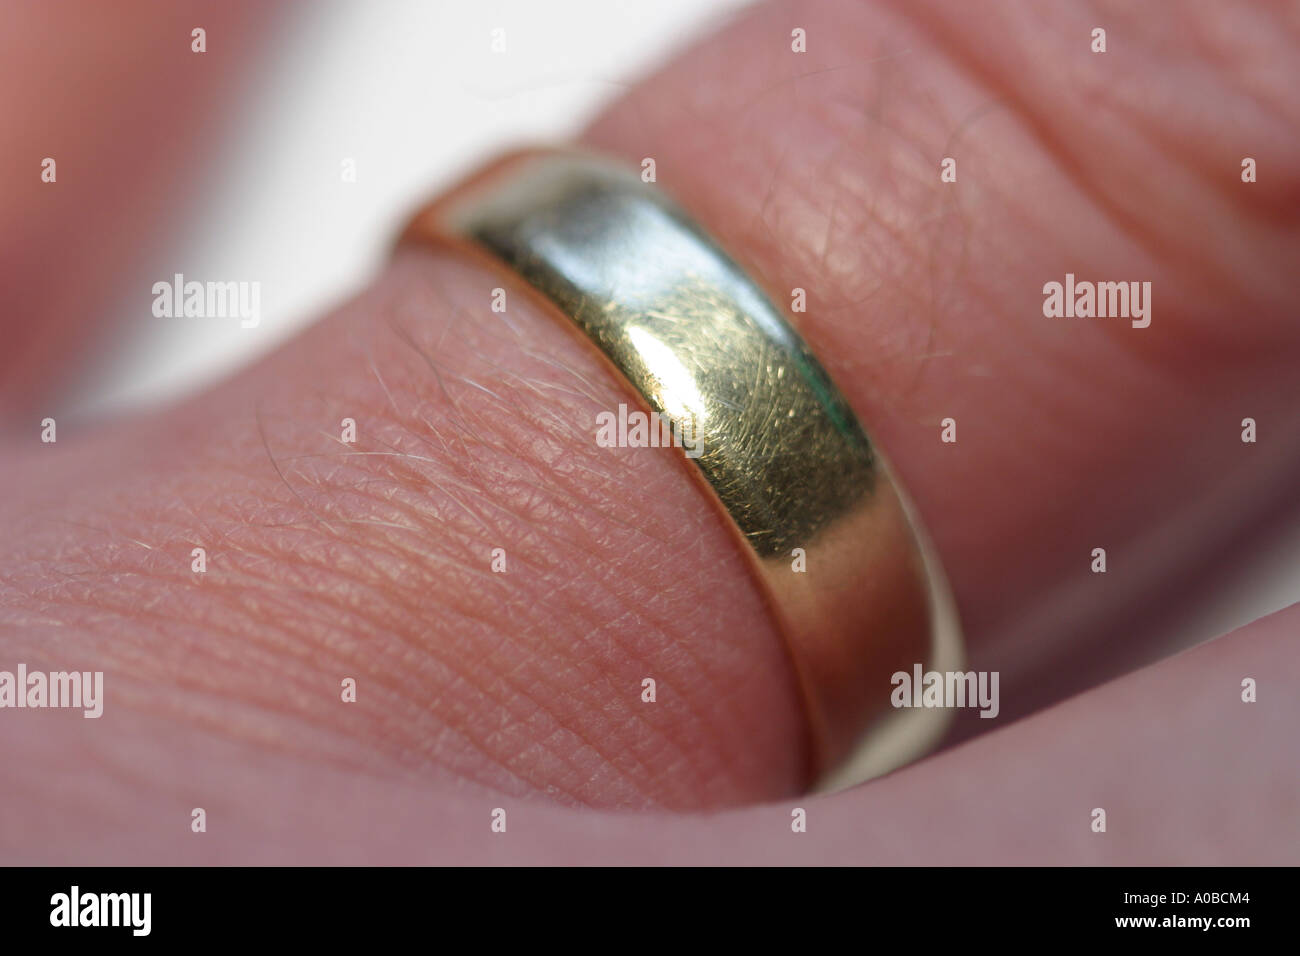 Wedding ring on a mans hand - Stock Image